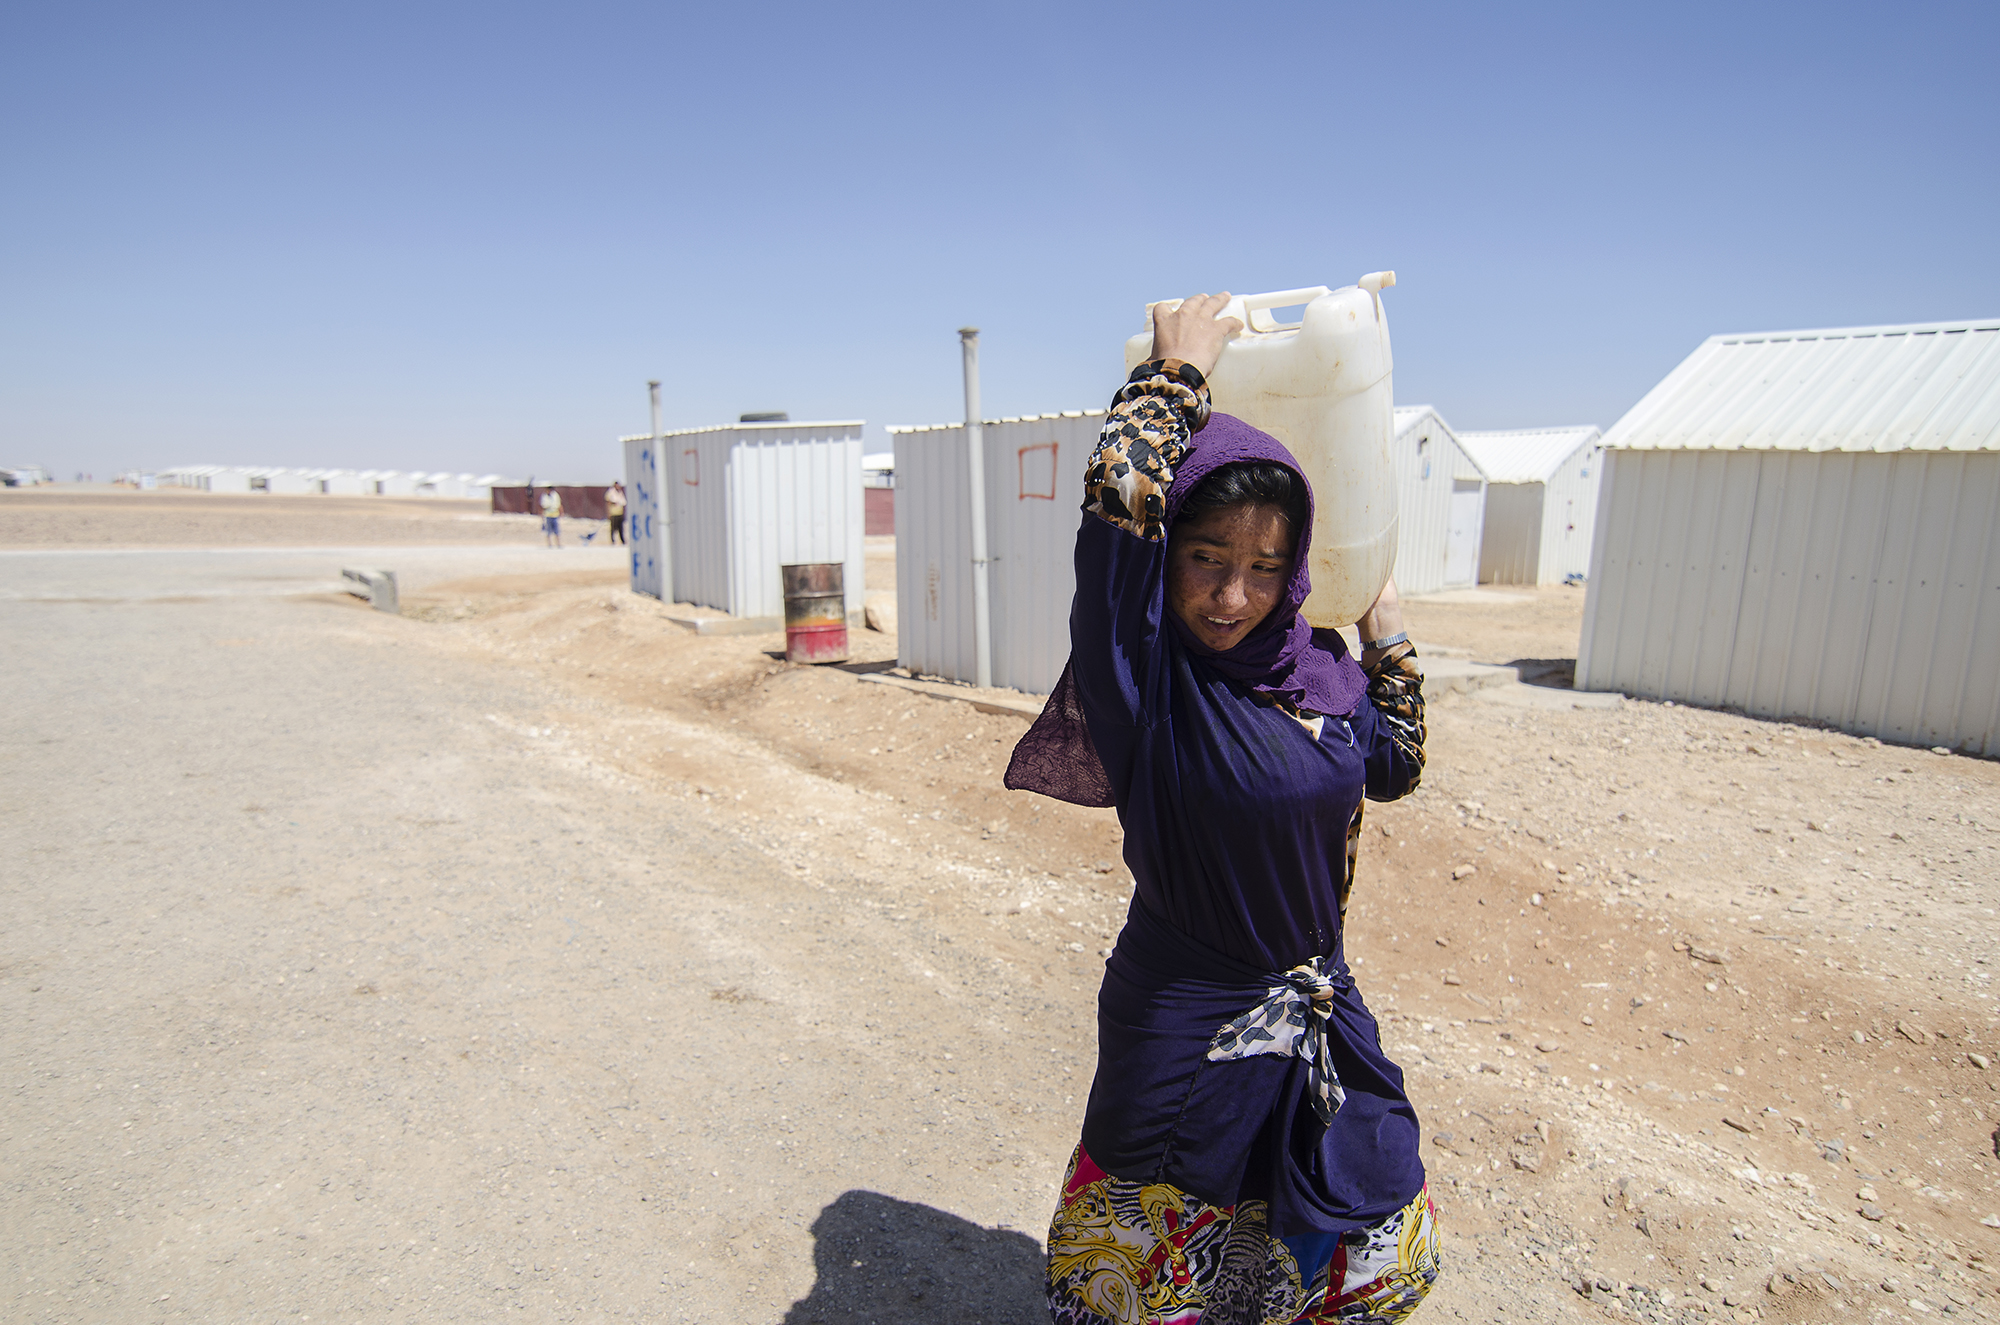 A refugee carries water back to her family's caravan in Jordan's Azraq Refugee Camp for Syrians, opened May 2014 in the country's eastern desert province and camp namesake, Azraq. Unlike Zaatari's chaotic, impromptu inception, Azraq's development was preplanned by the UNHCR as an humanitarian response to increasing numbers of refugees.  See more at Al Jazeera.  June 2015.